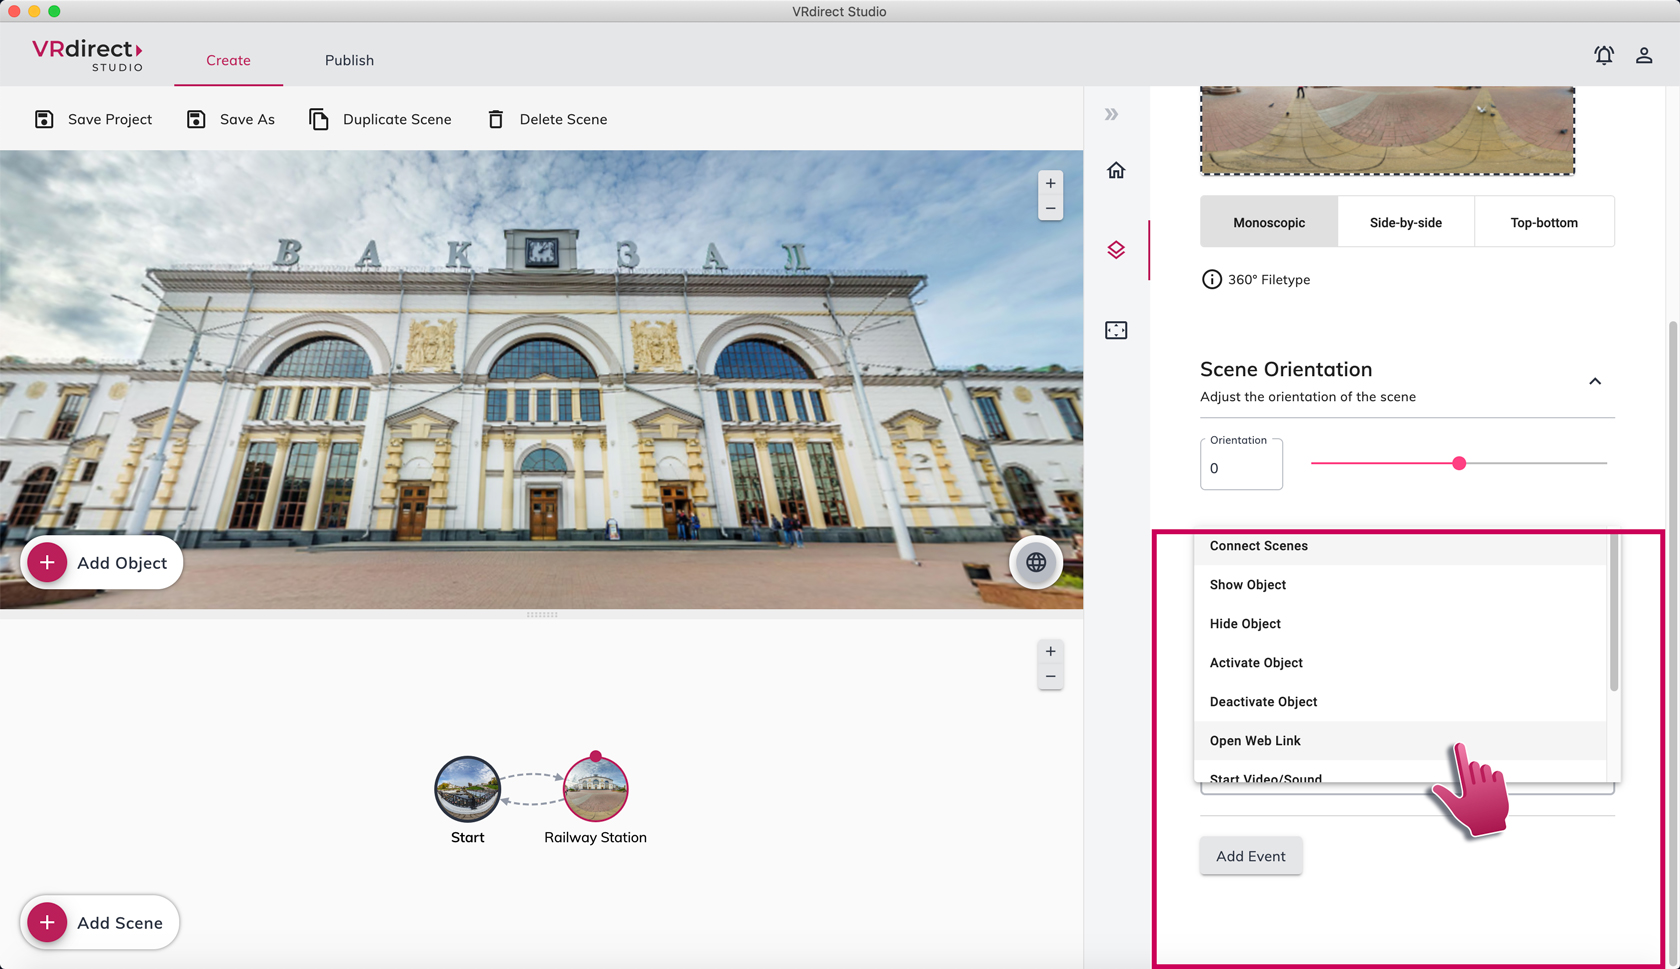 New feature in VRdirect Studio 2.2.0: Add external web links to your VR project and overcome software borders